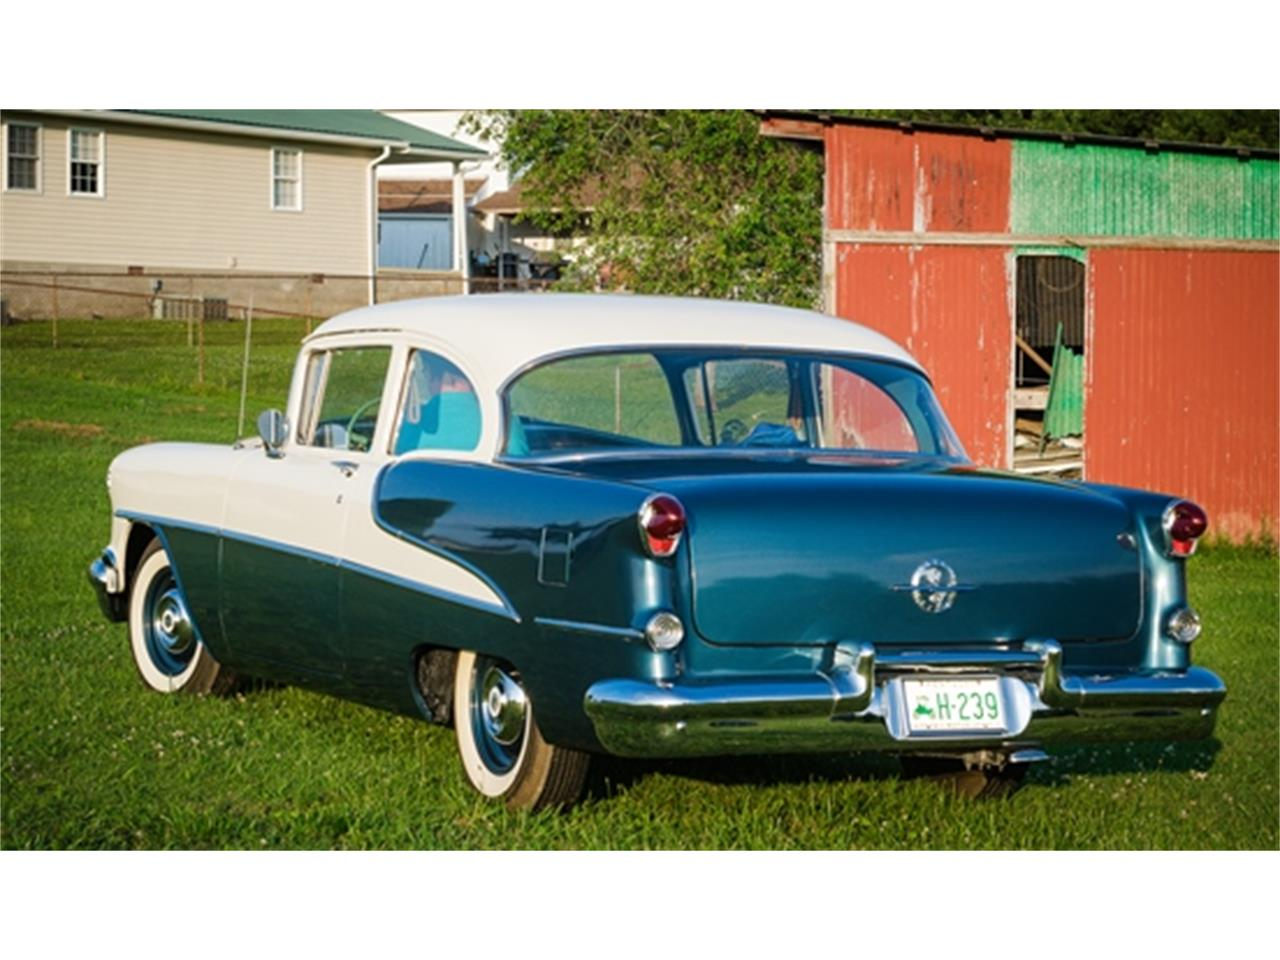 1955 Oldsmobile Delta 88 (CC-1216688) for sale in Flatwoods, Kentucky